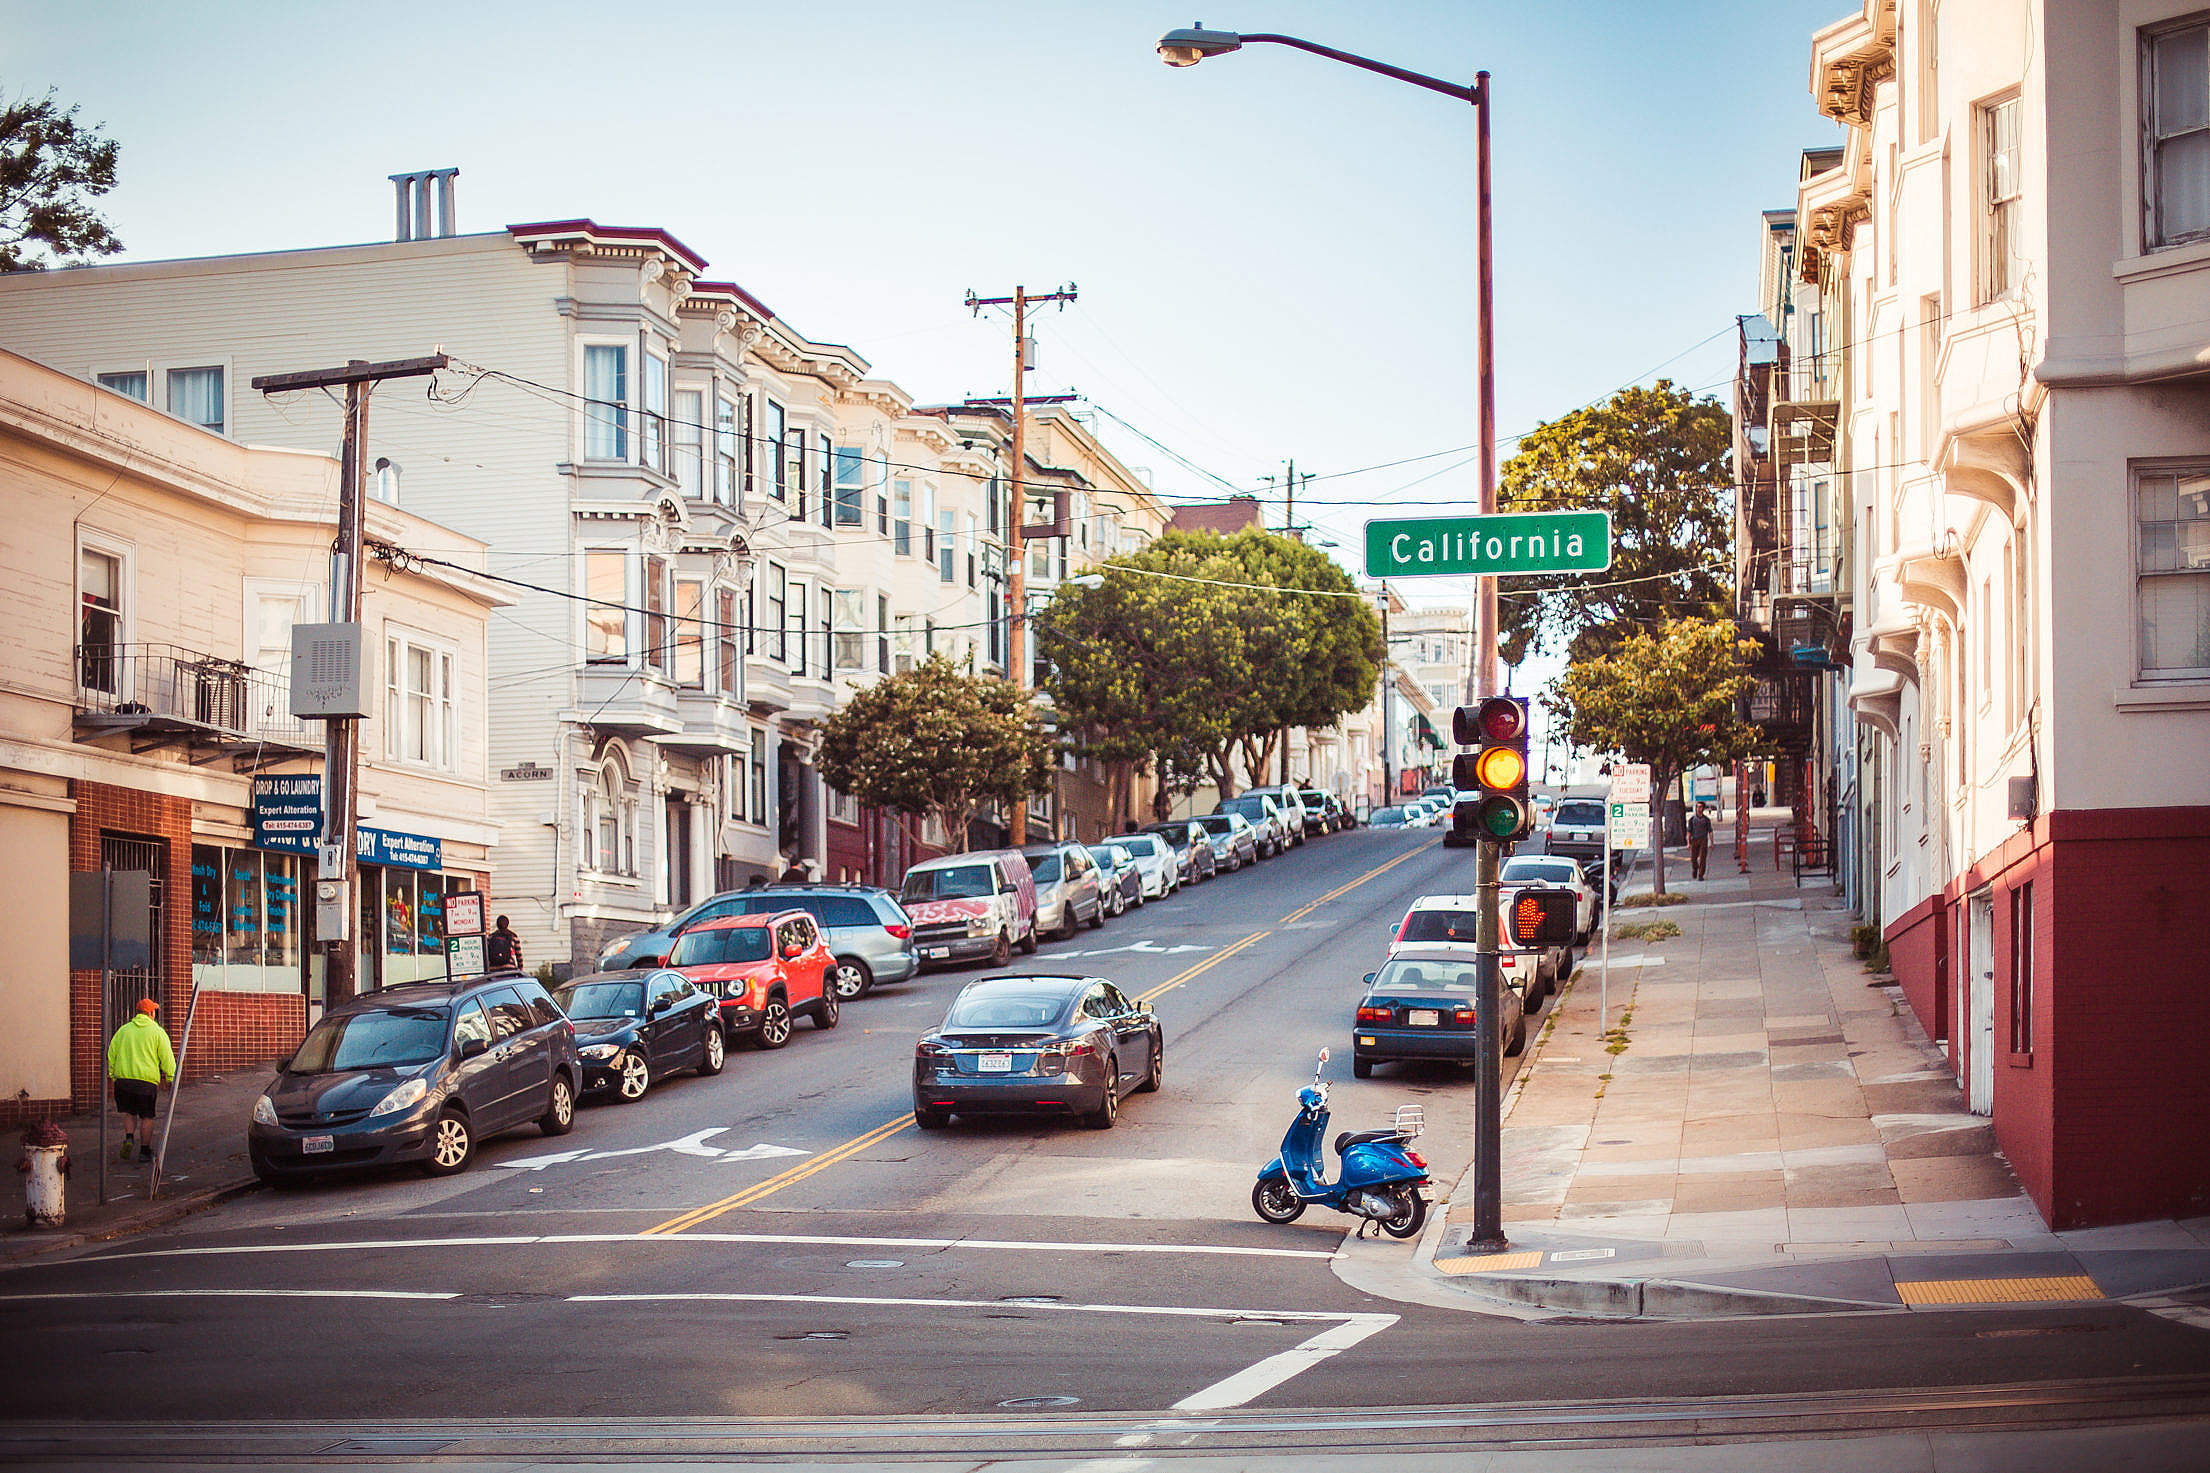 Random Shot of California Street Intersection Free Stock Photo